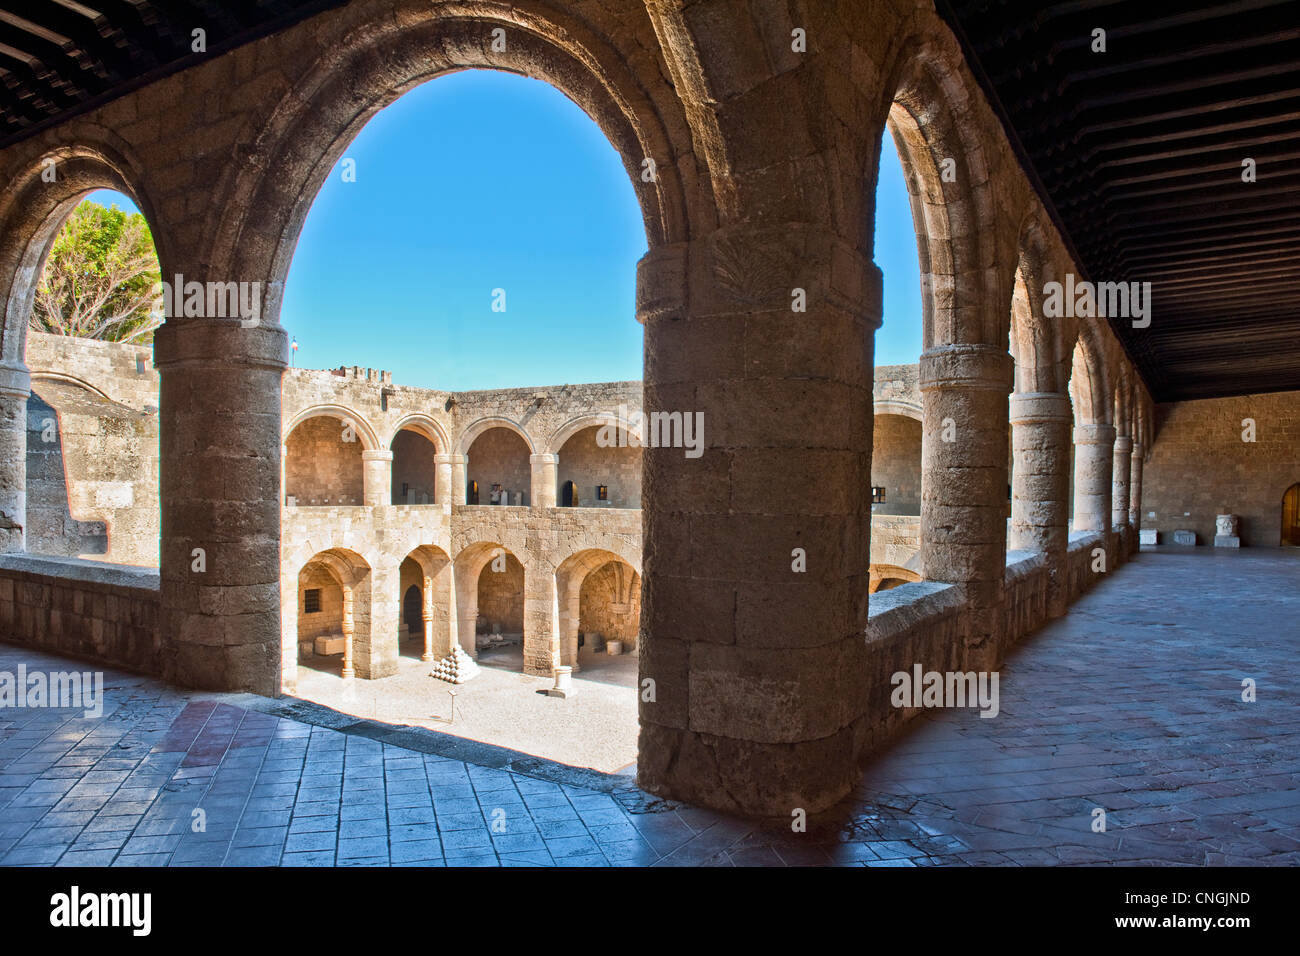 Europe Greece , Dodecanese islands , Rhodes, the former hospital of St John's Knights, museum - Stock Image